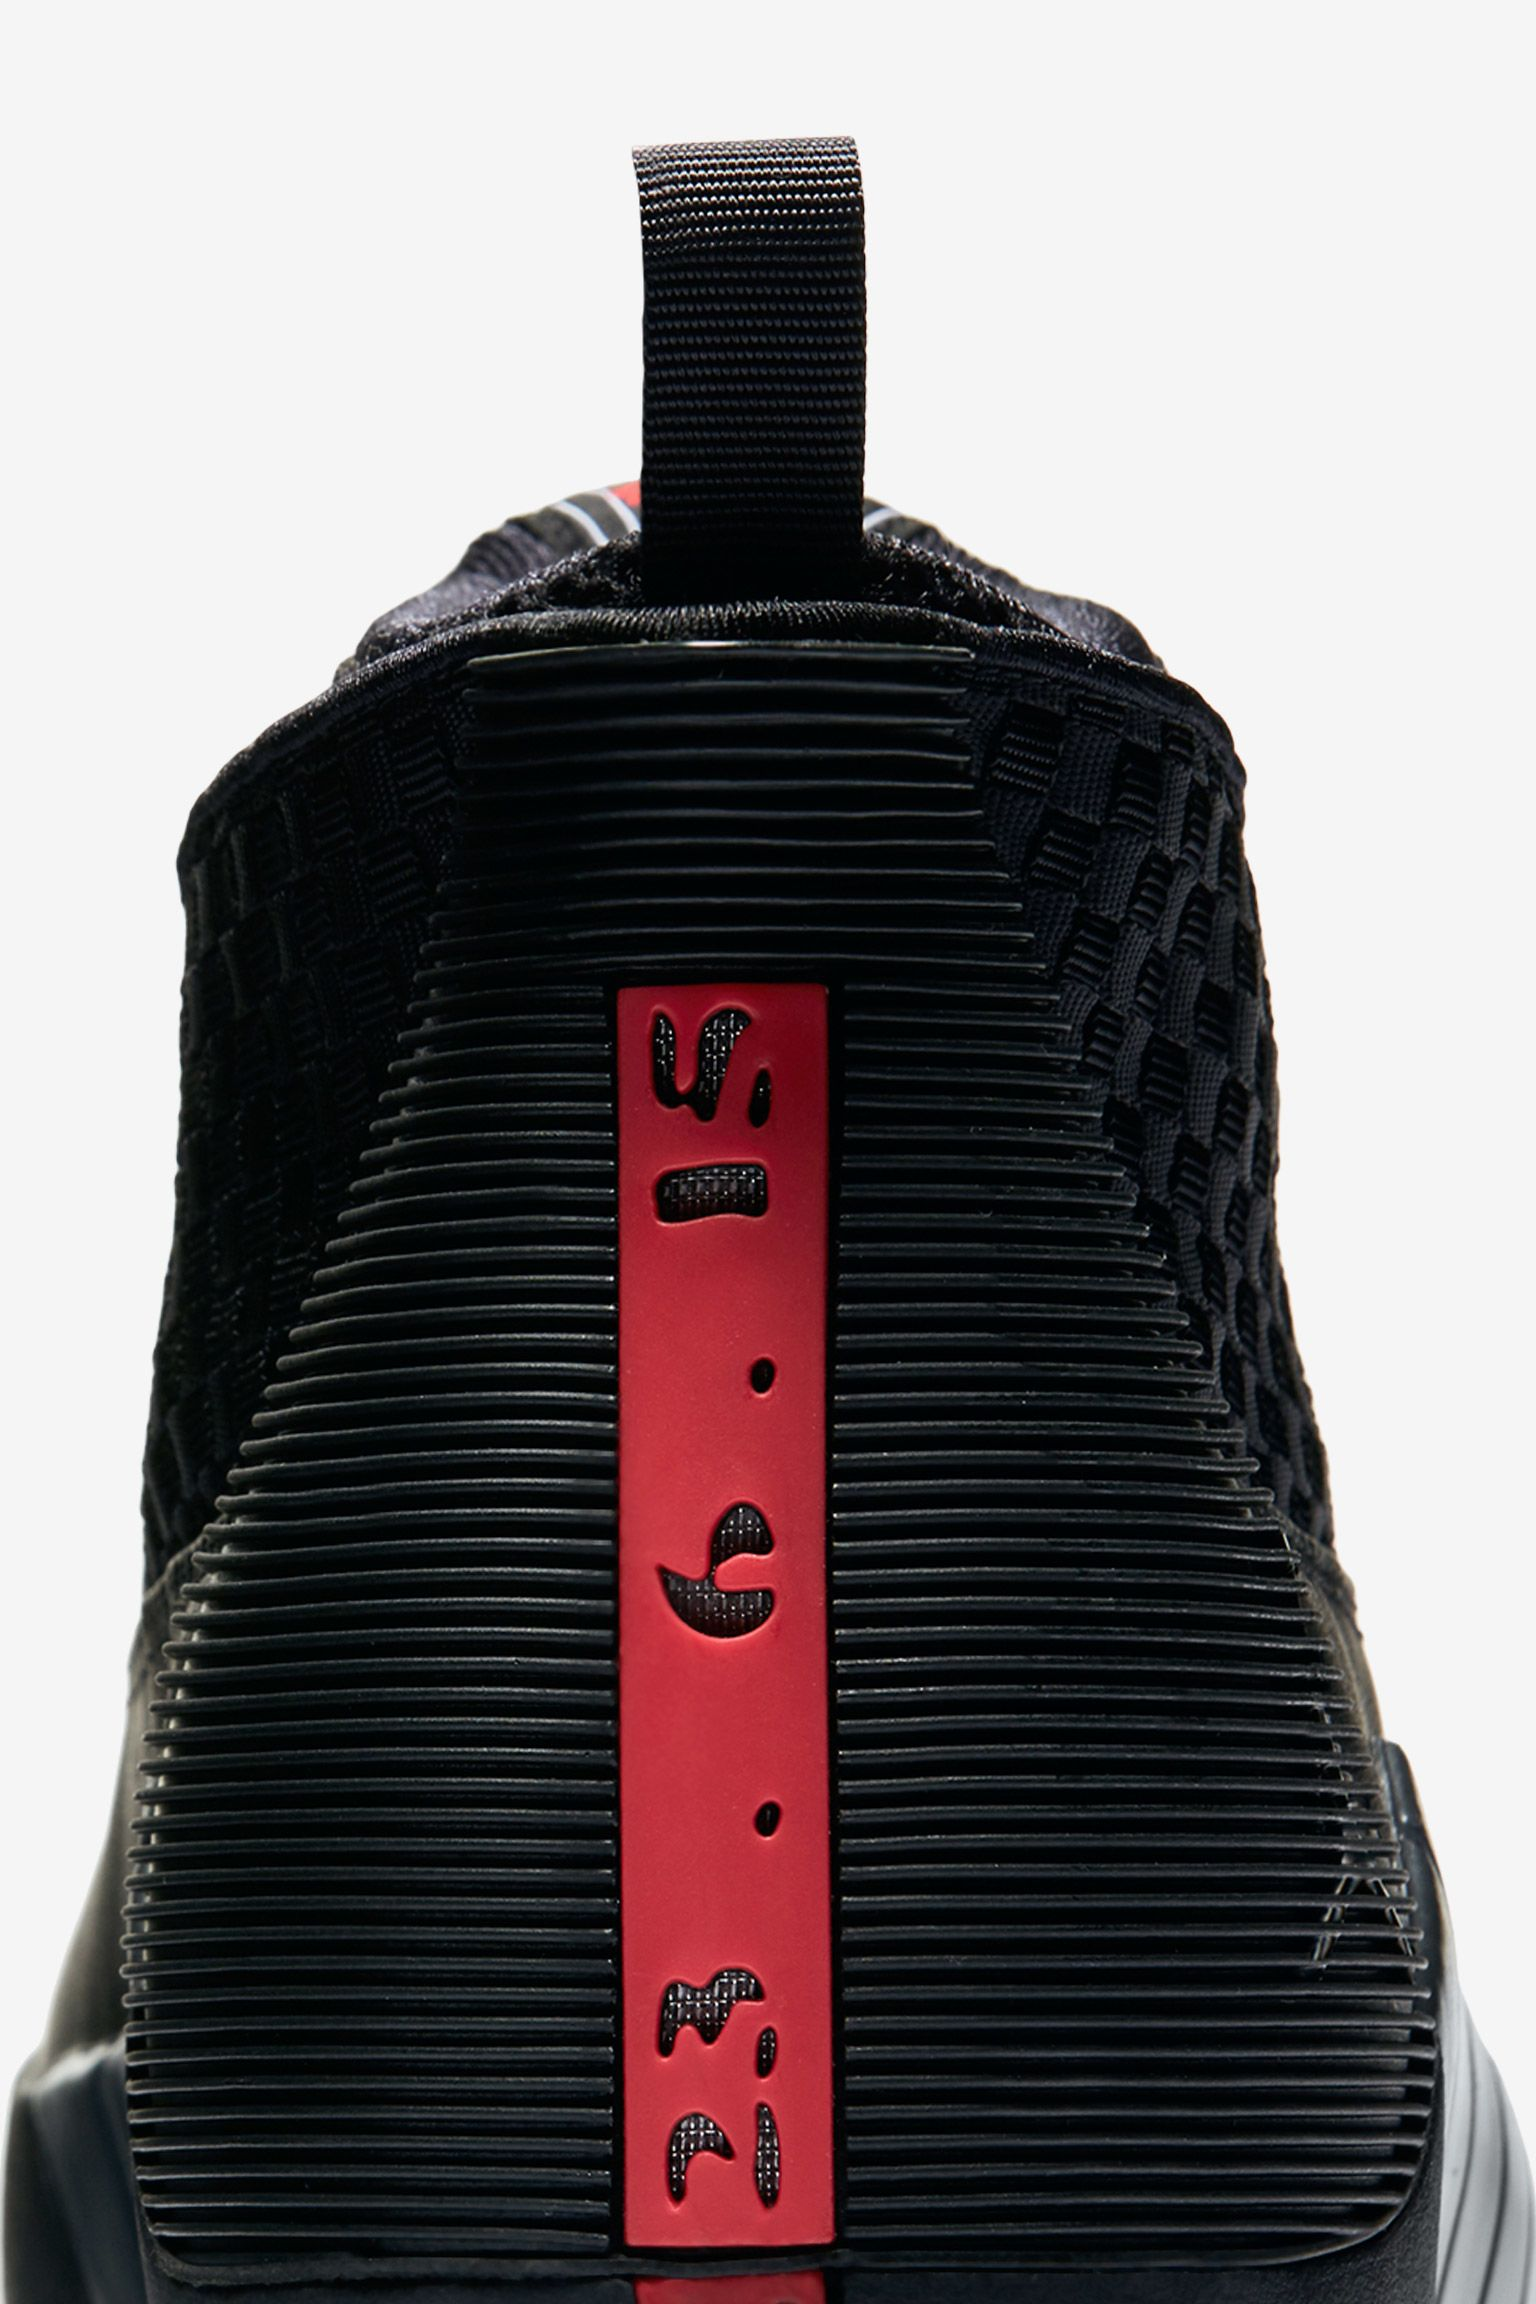 Air Jordan 15 Retro OG 'Black & Varsity Red'